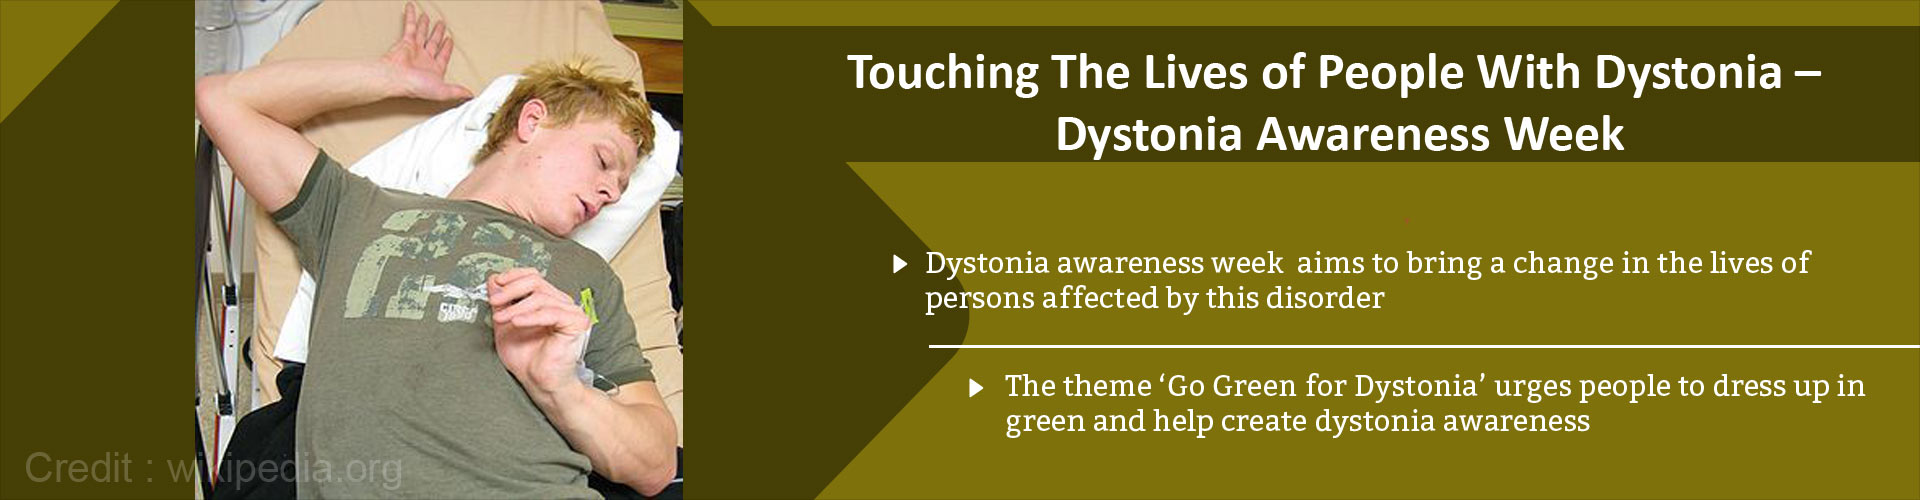 Touching the lives of people with dystonia -  dystonia awareness week - Dystonia awareness week aims to bring a change in the lives of persons affected by this disorder - The theme